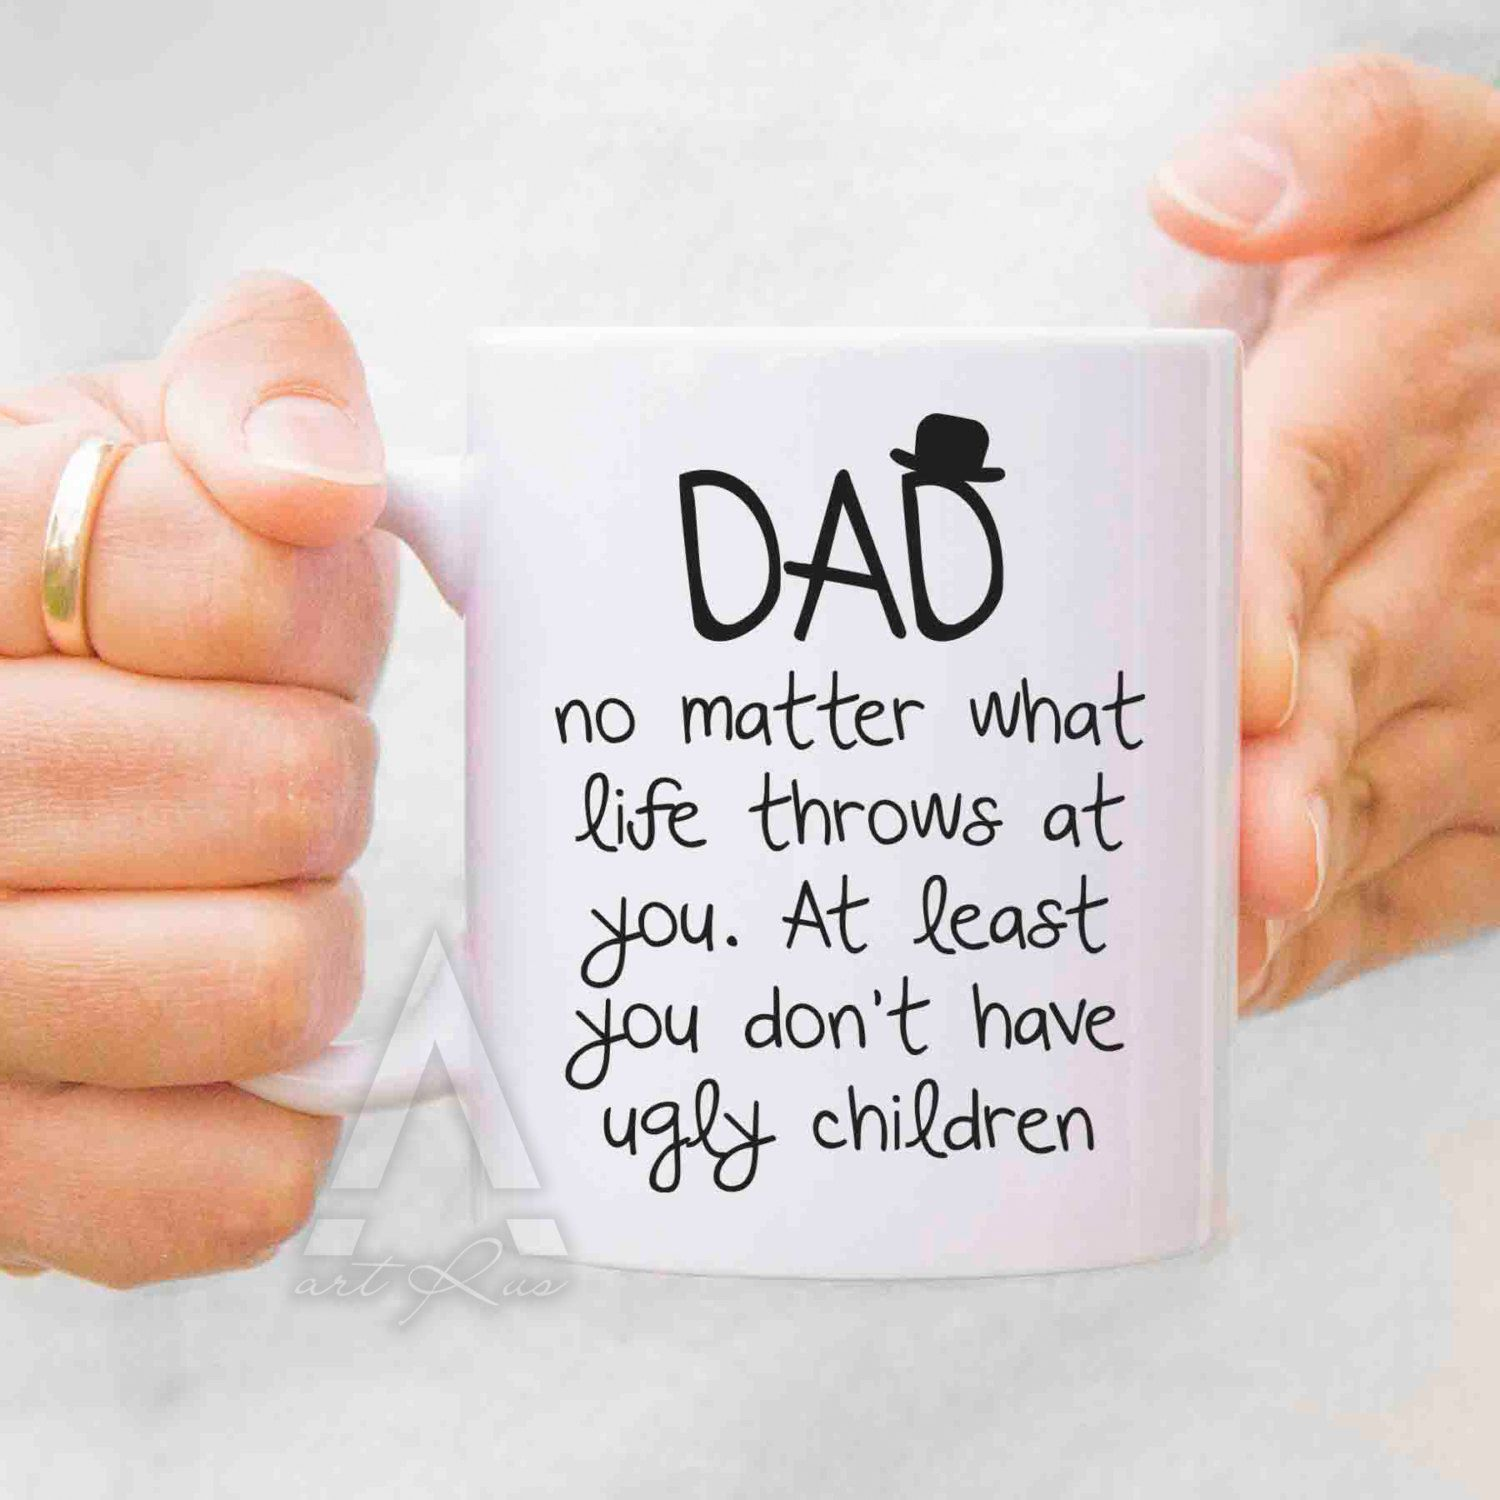 fathers day gift from daughter father mug dad mug gift